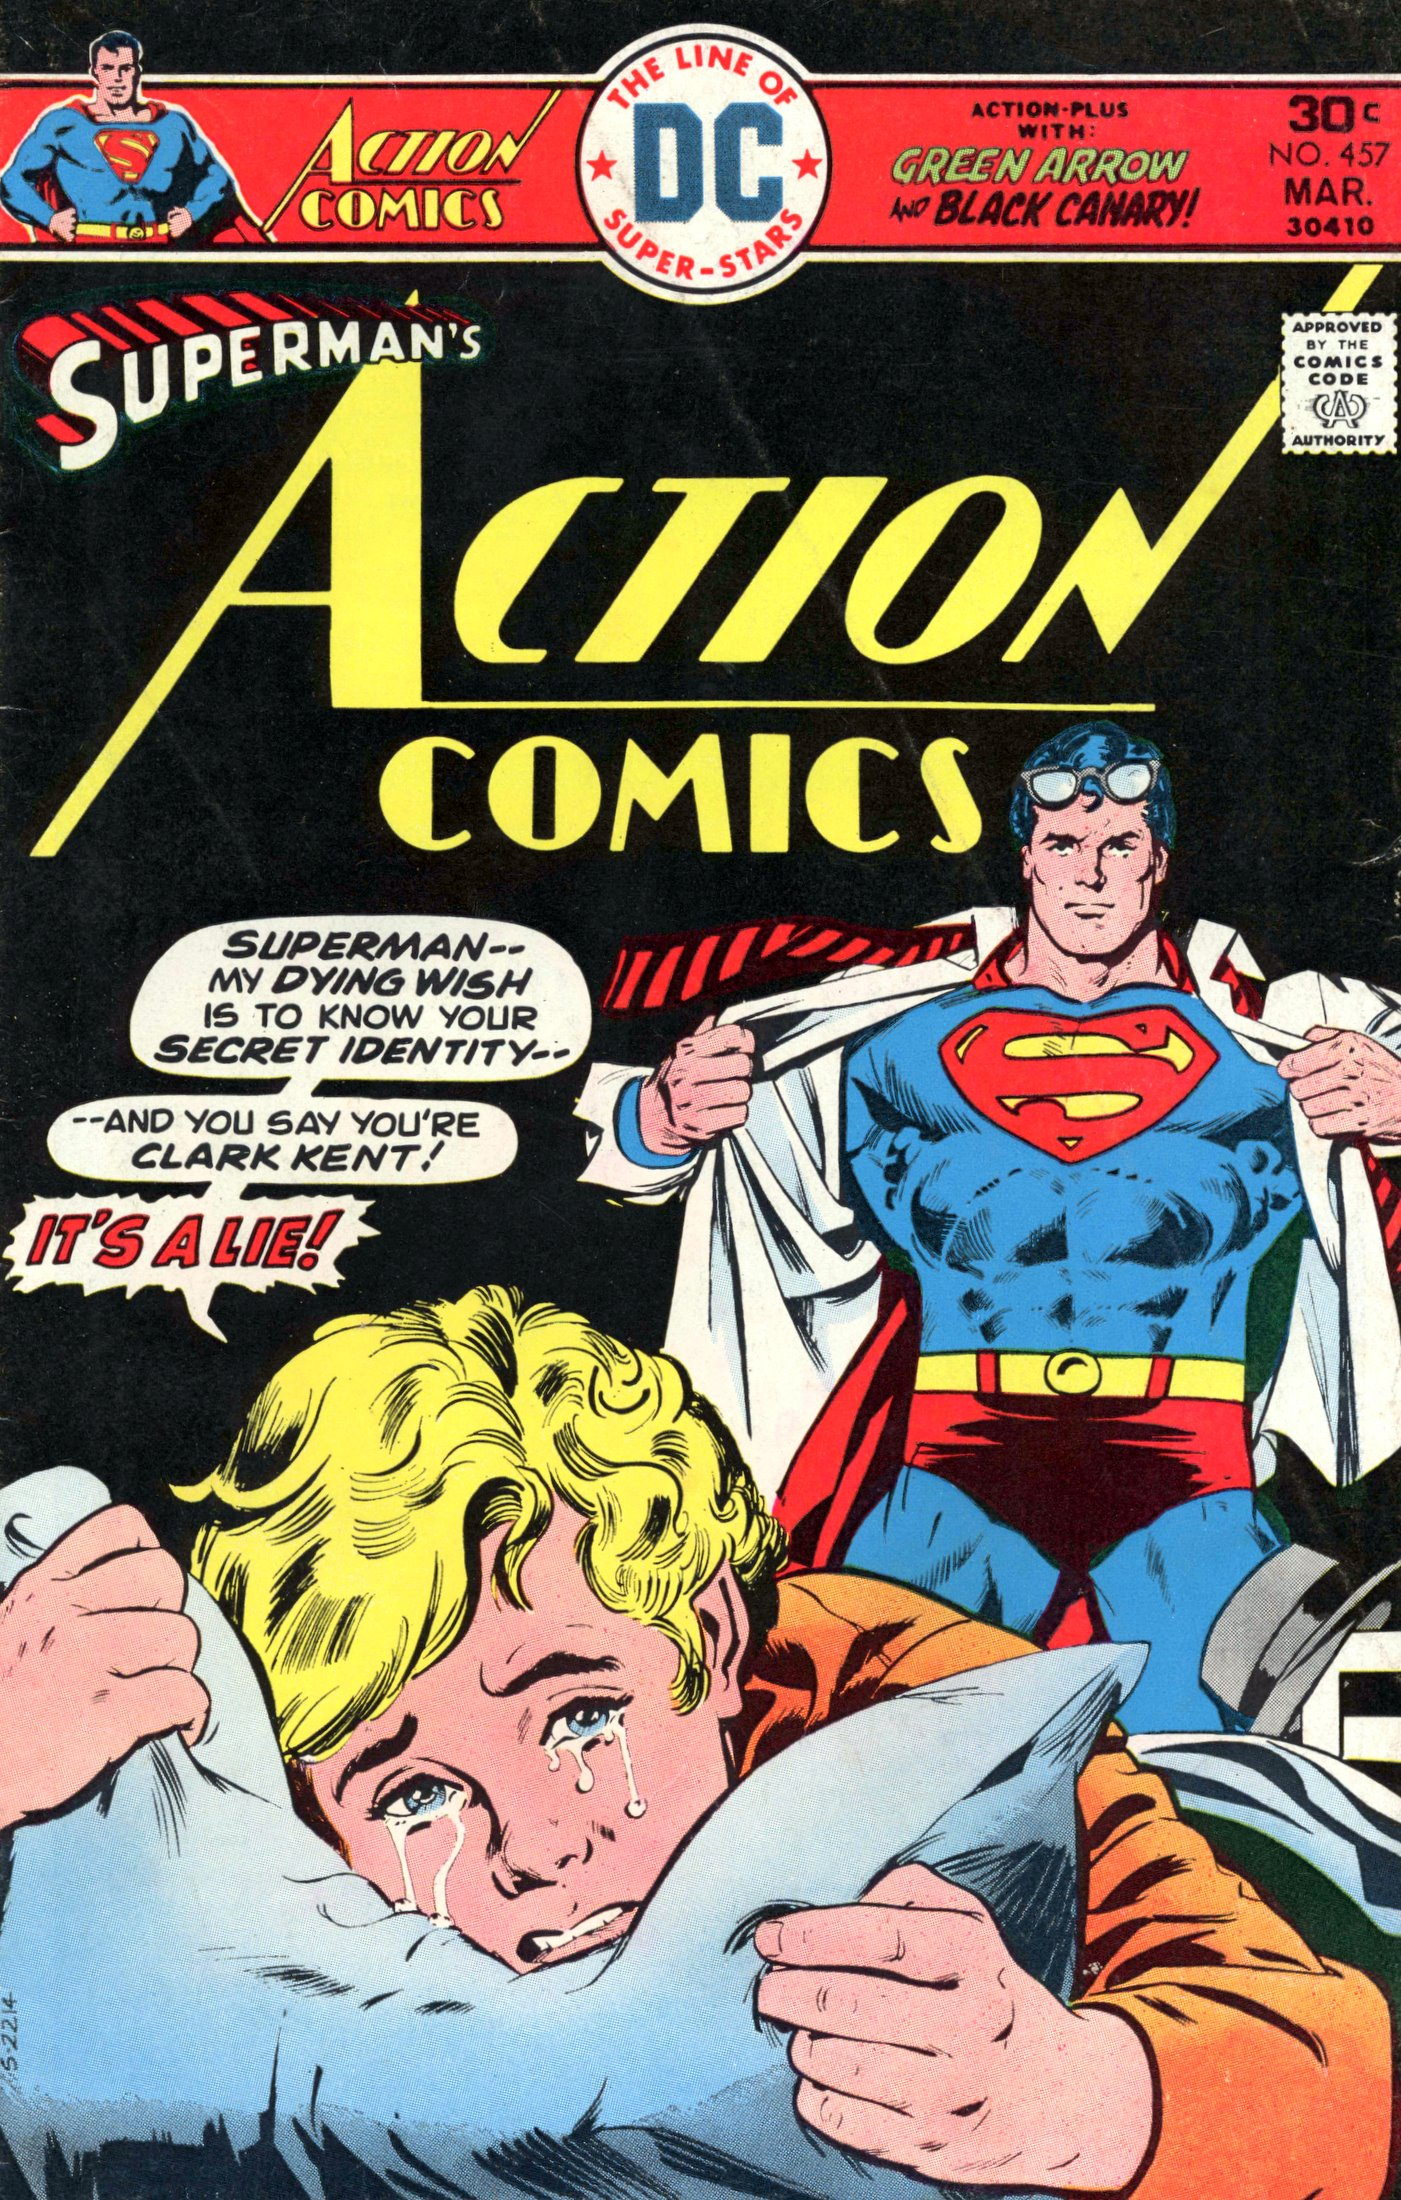 Read online Action Comics (1938) comic -  Issue #457 - 1